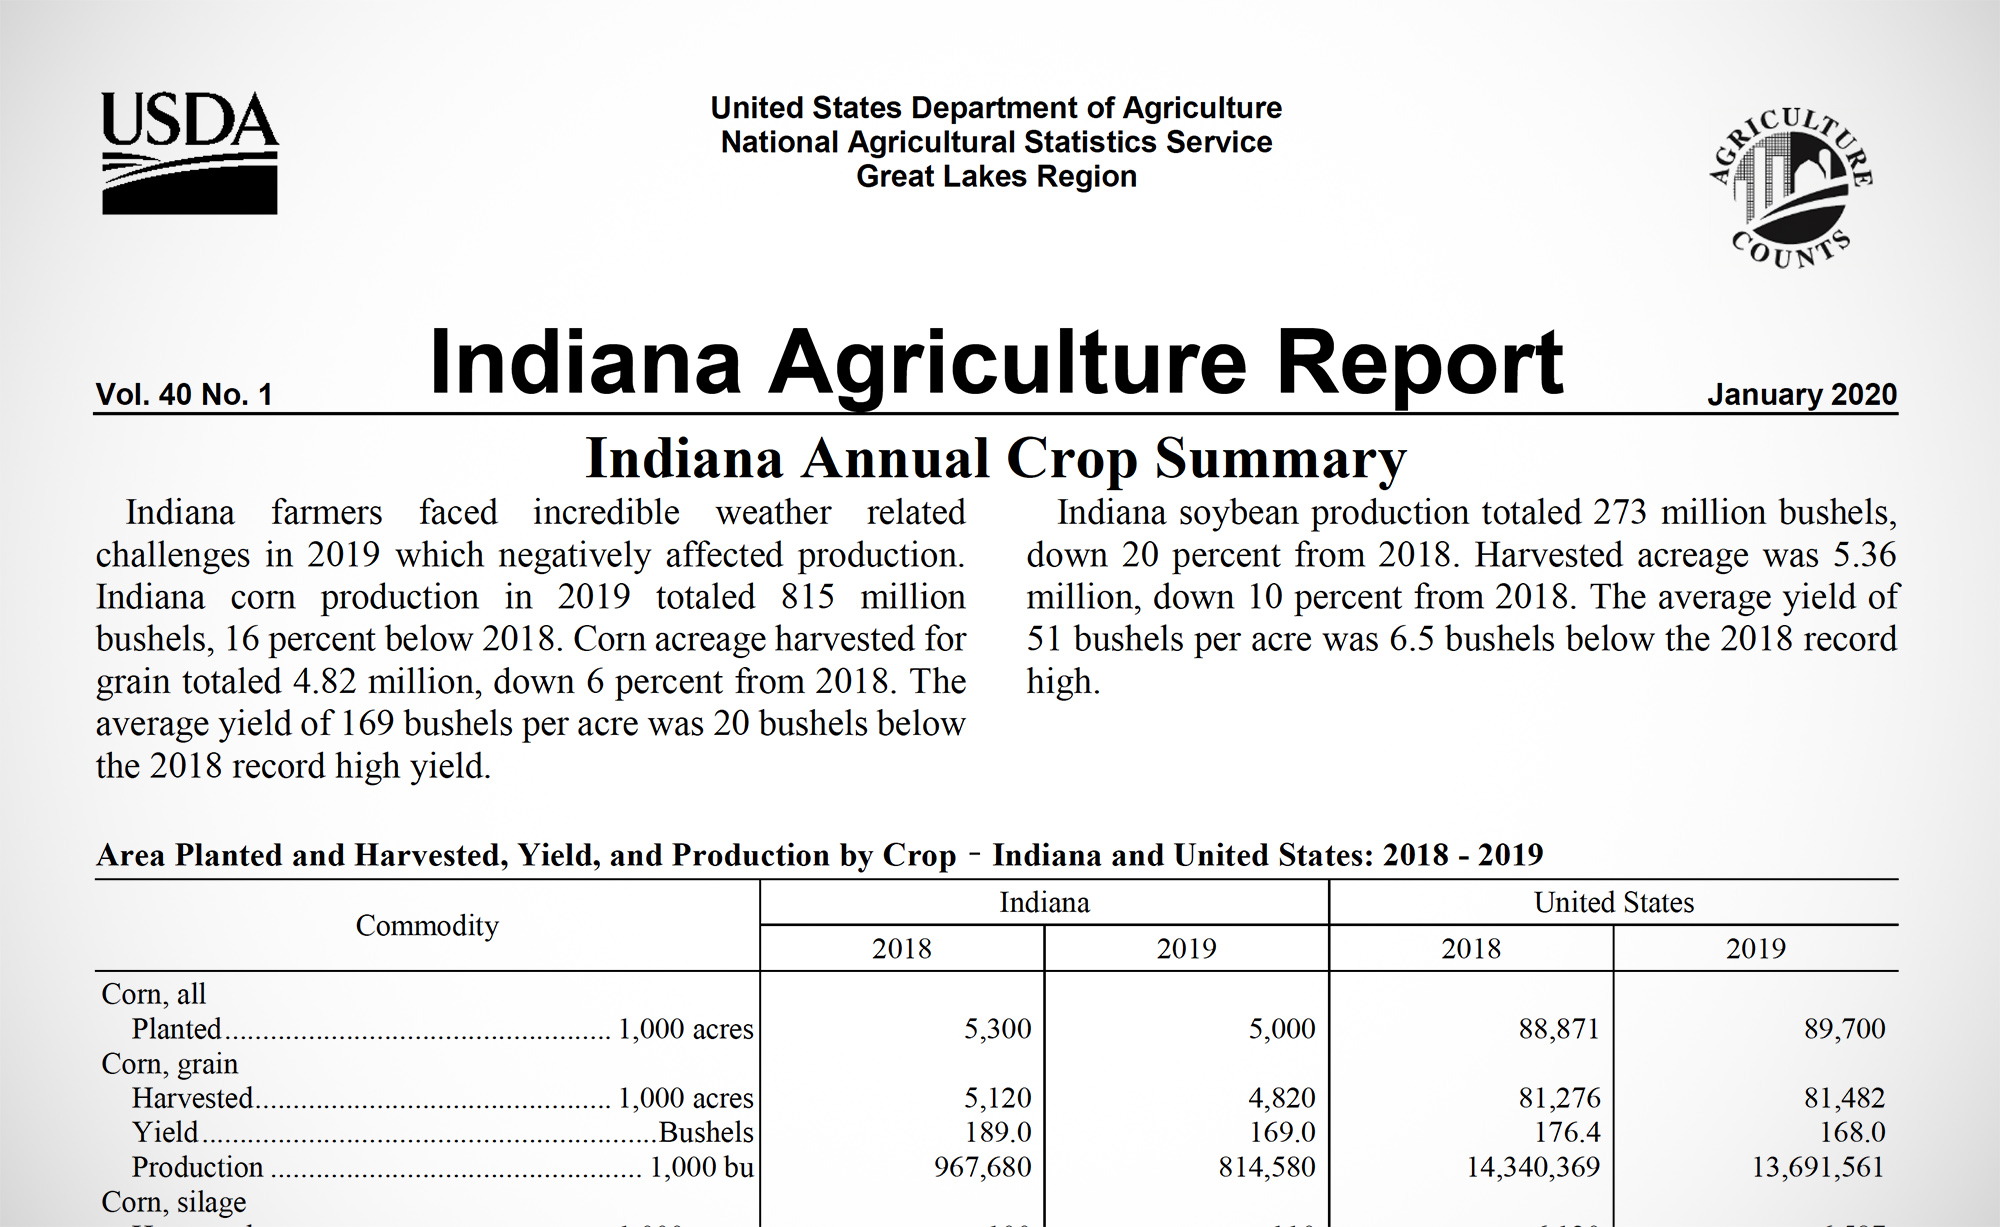 January 2020 annual crop summary